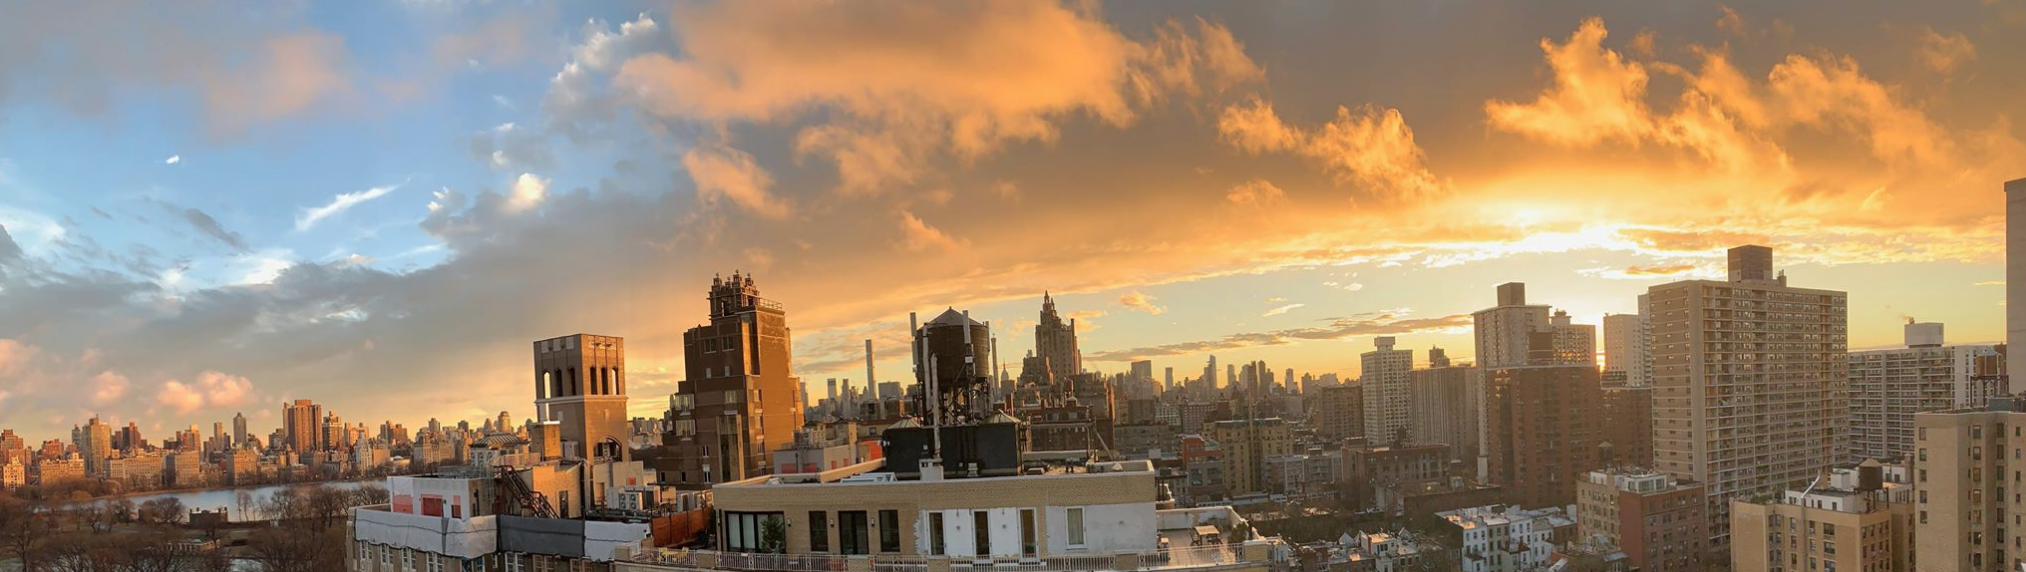 An Upper West Side Sunset